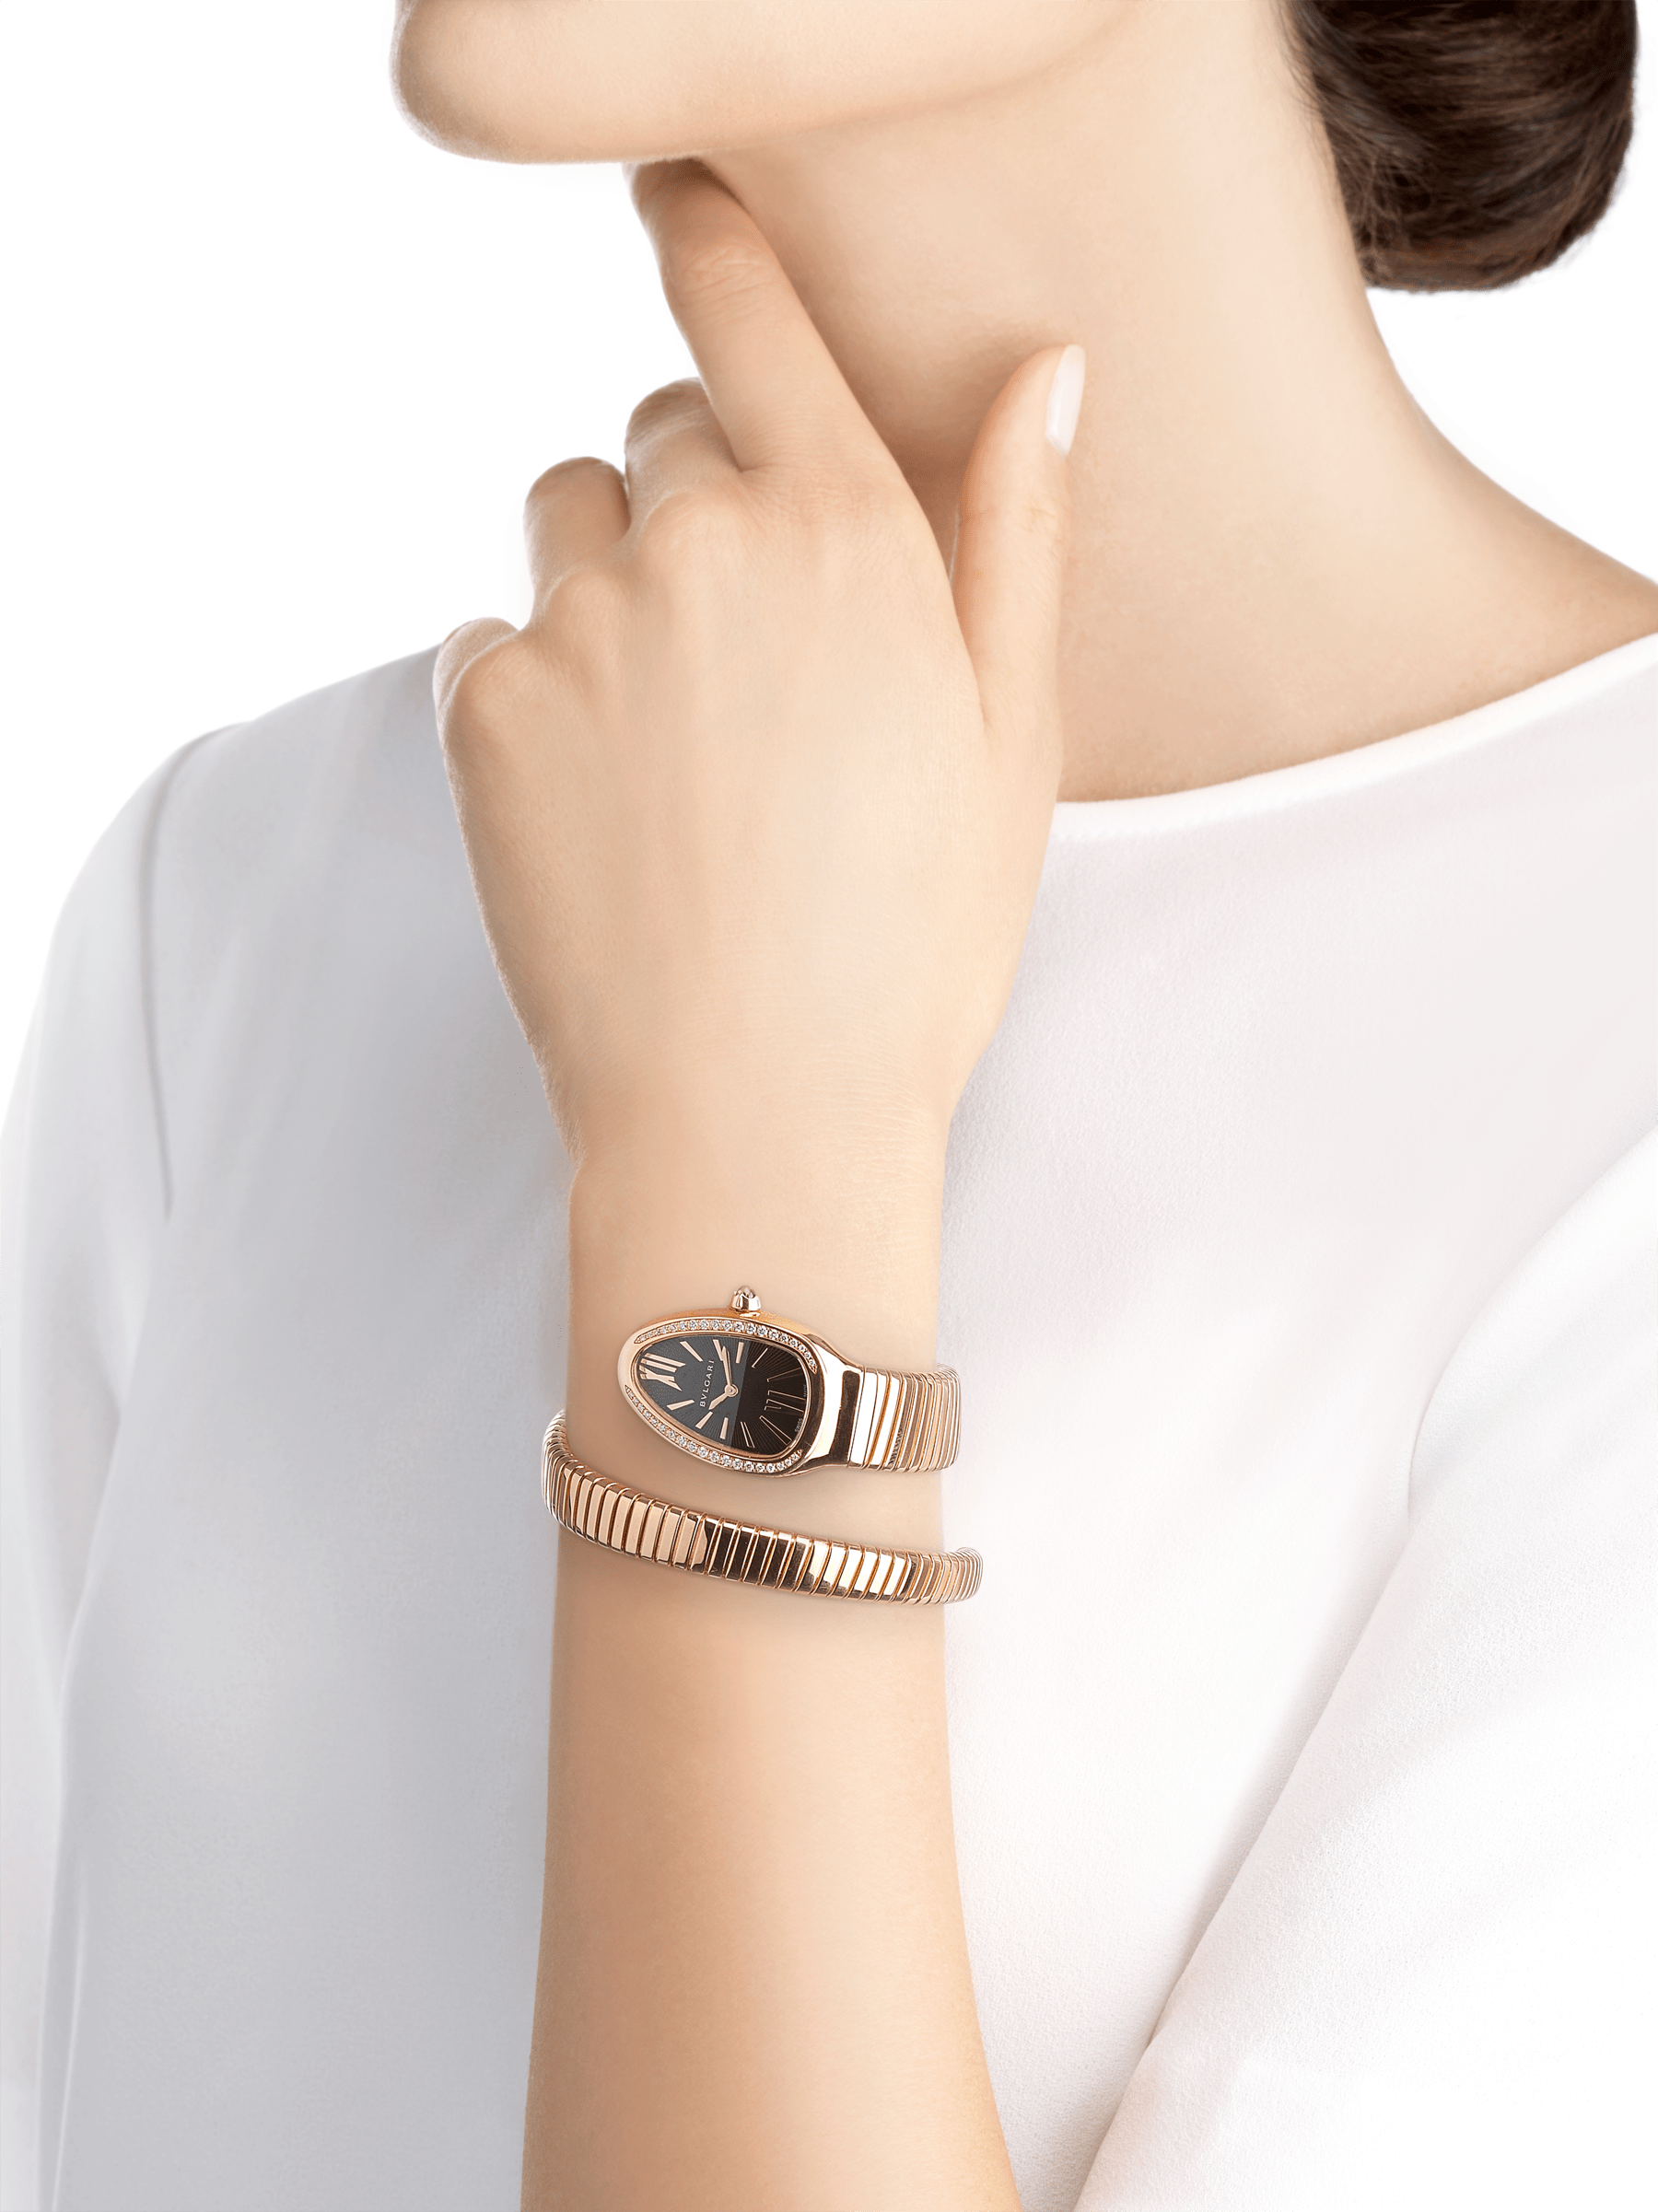 Serpenti Tubogas single spiral watch with 18 kt rose gold case set with brilliant cut diamond, black opaline dial and 18kt rose gold bracelet. 101815 image 4